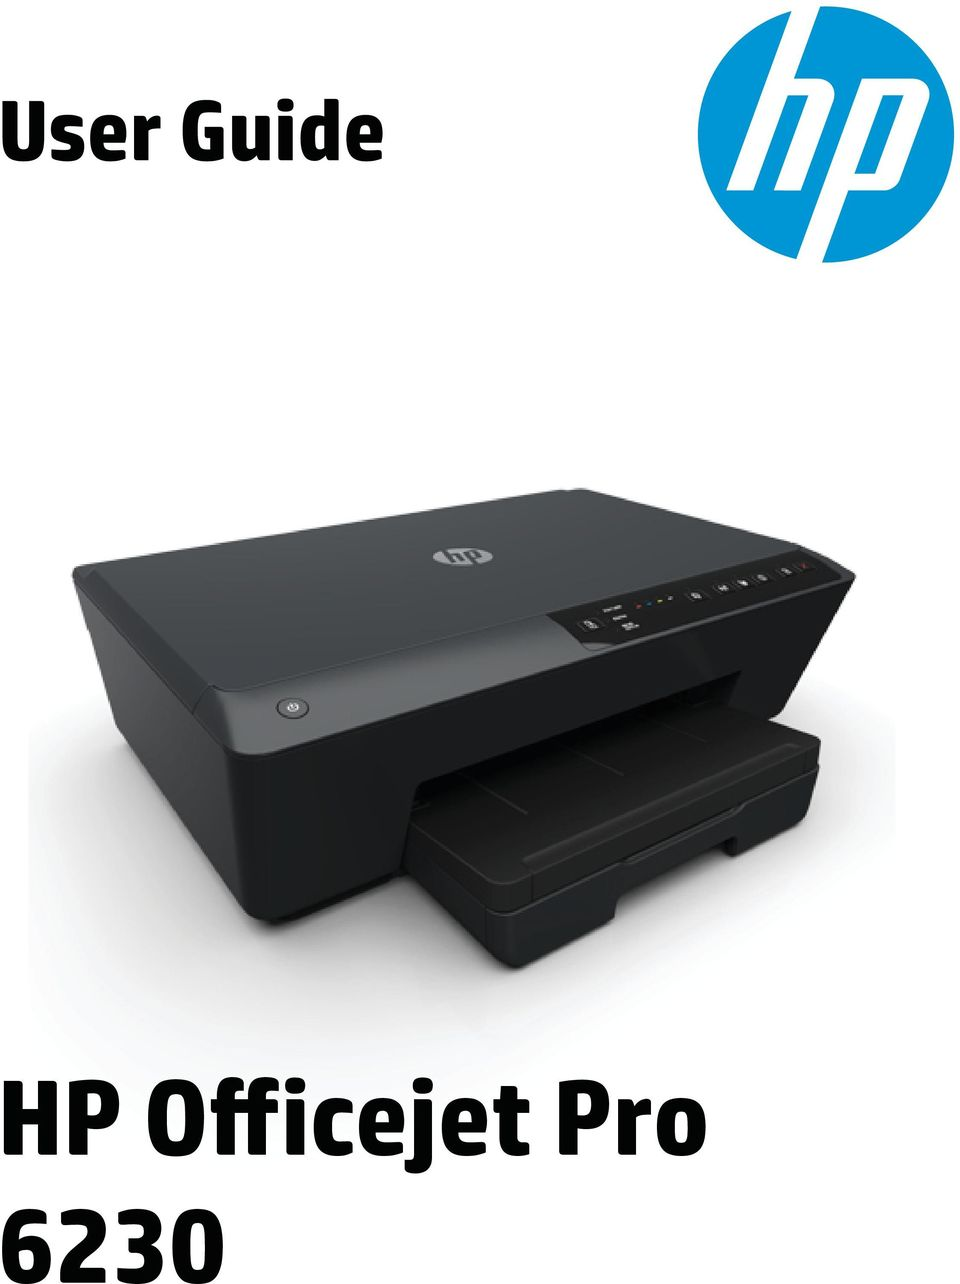 2 HP Officejet Pro 6230 User Guide